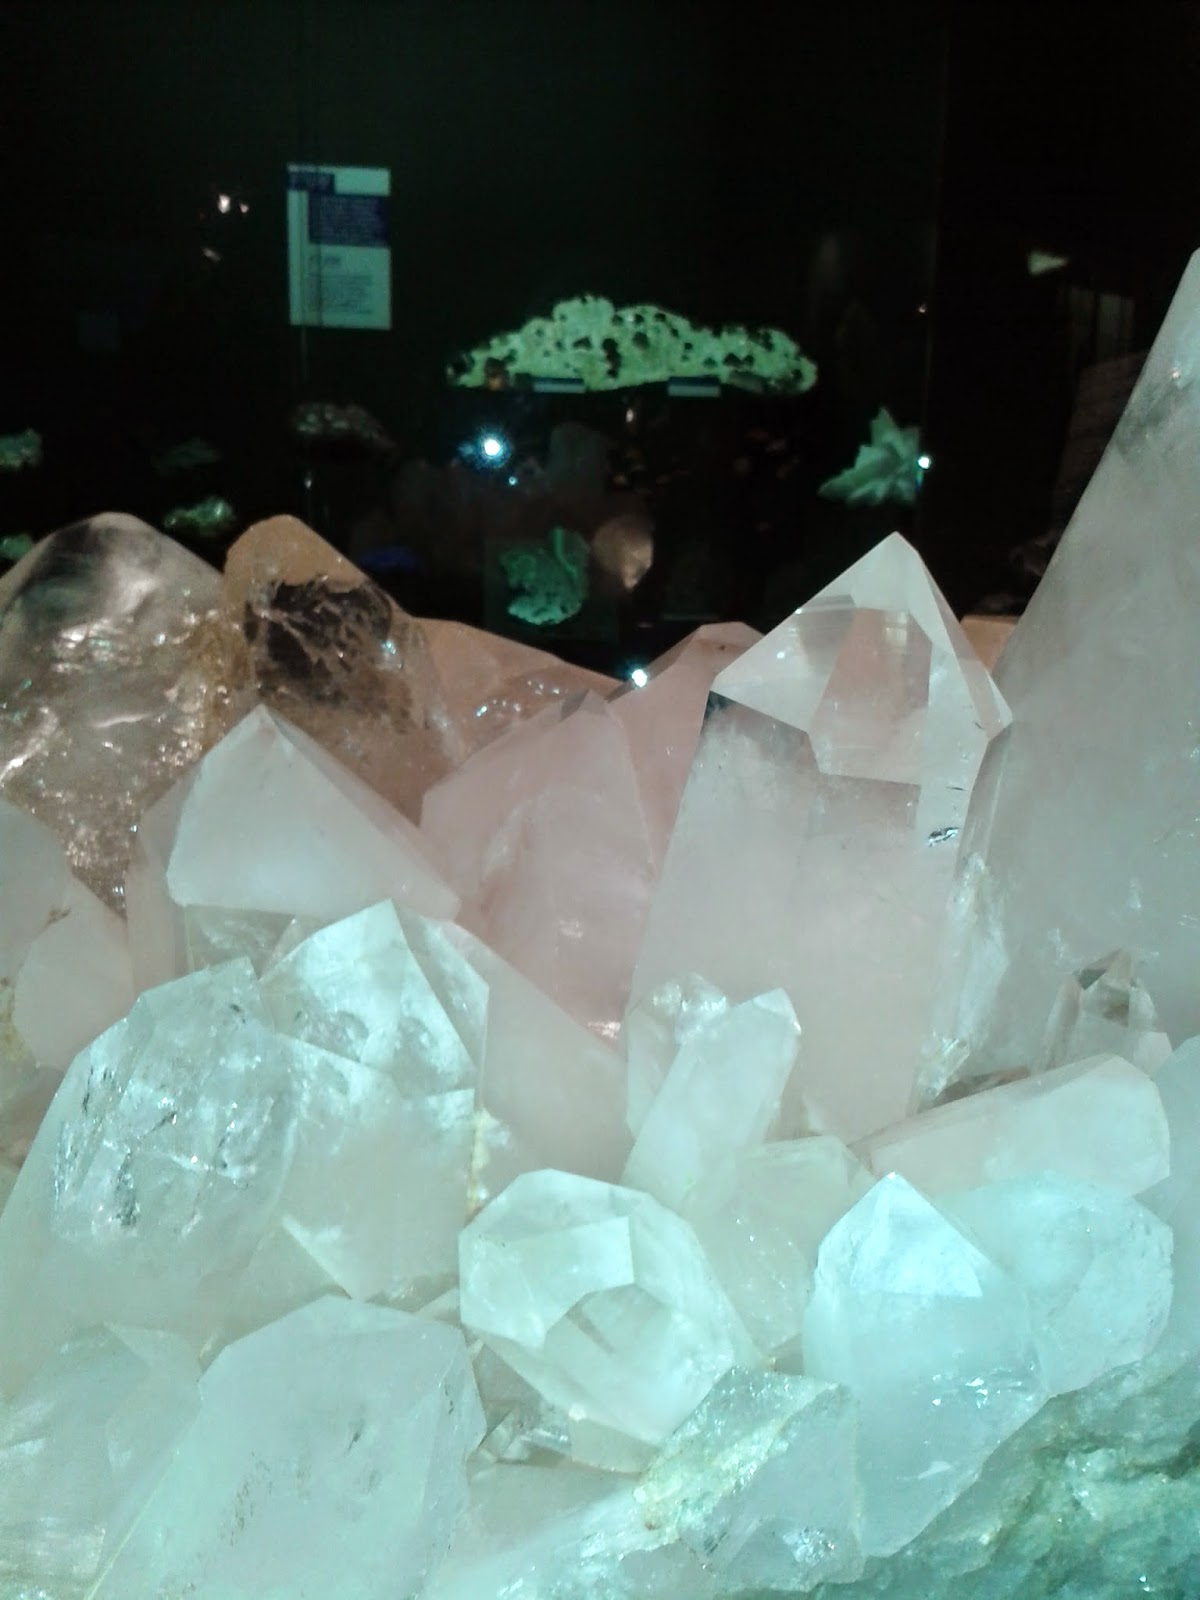 Large crystals